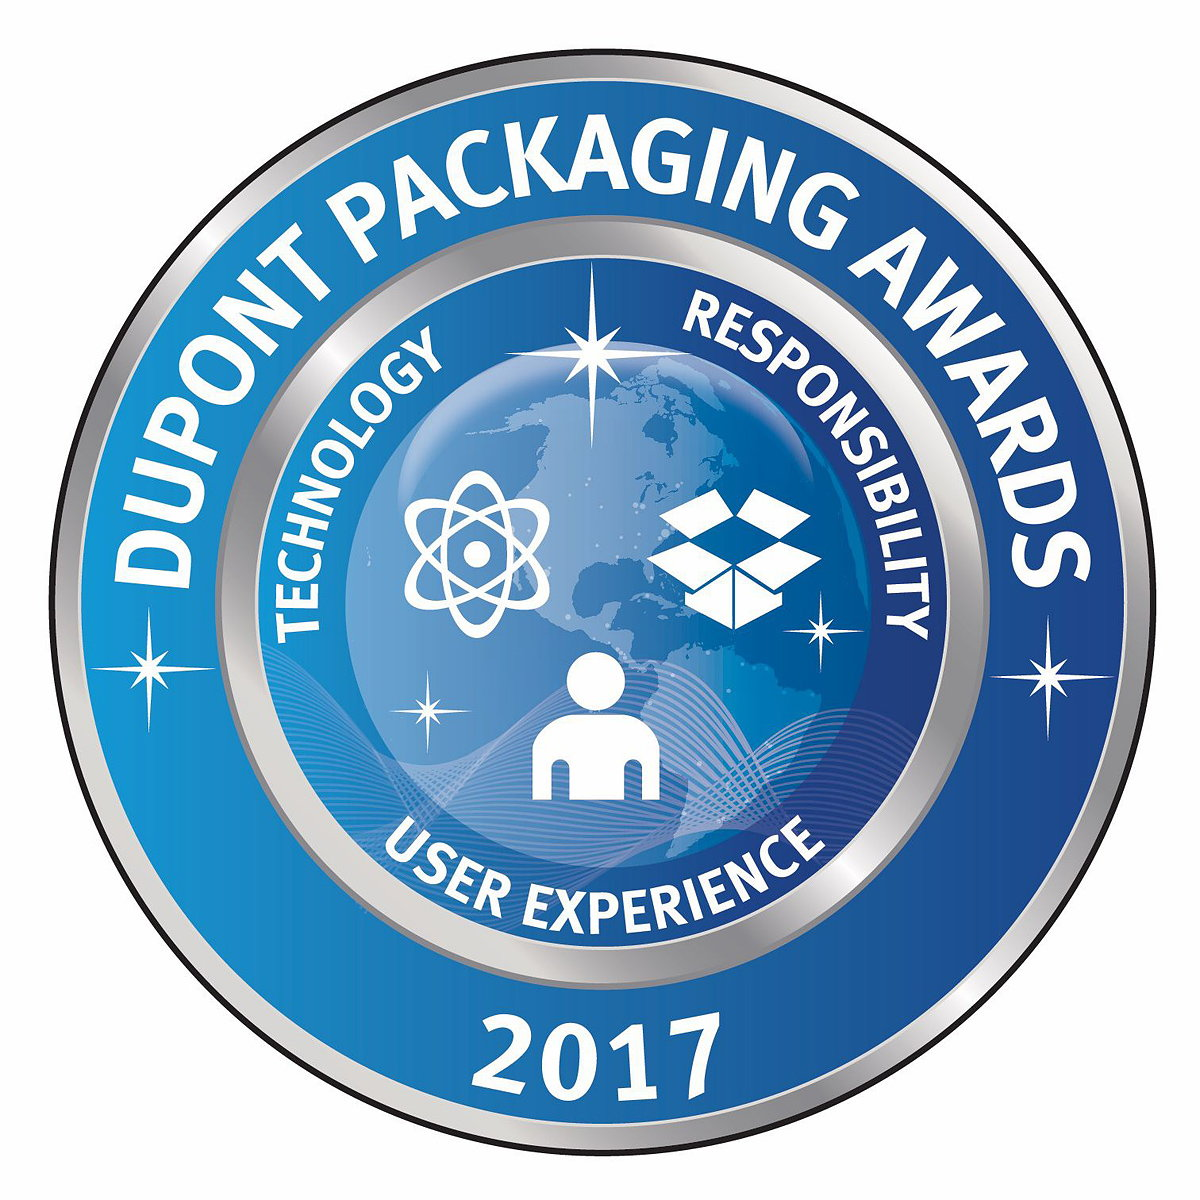 Winners Of The 2018 Dupont Columbia Awards: 2017 DuPont Awards For Packaging Innovation